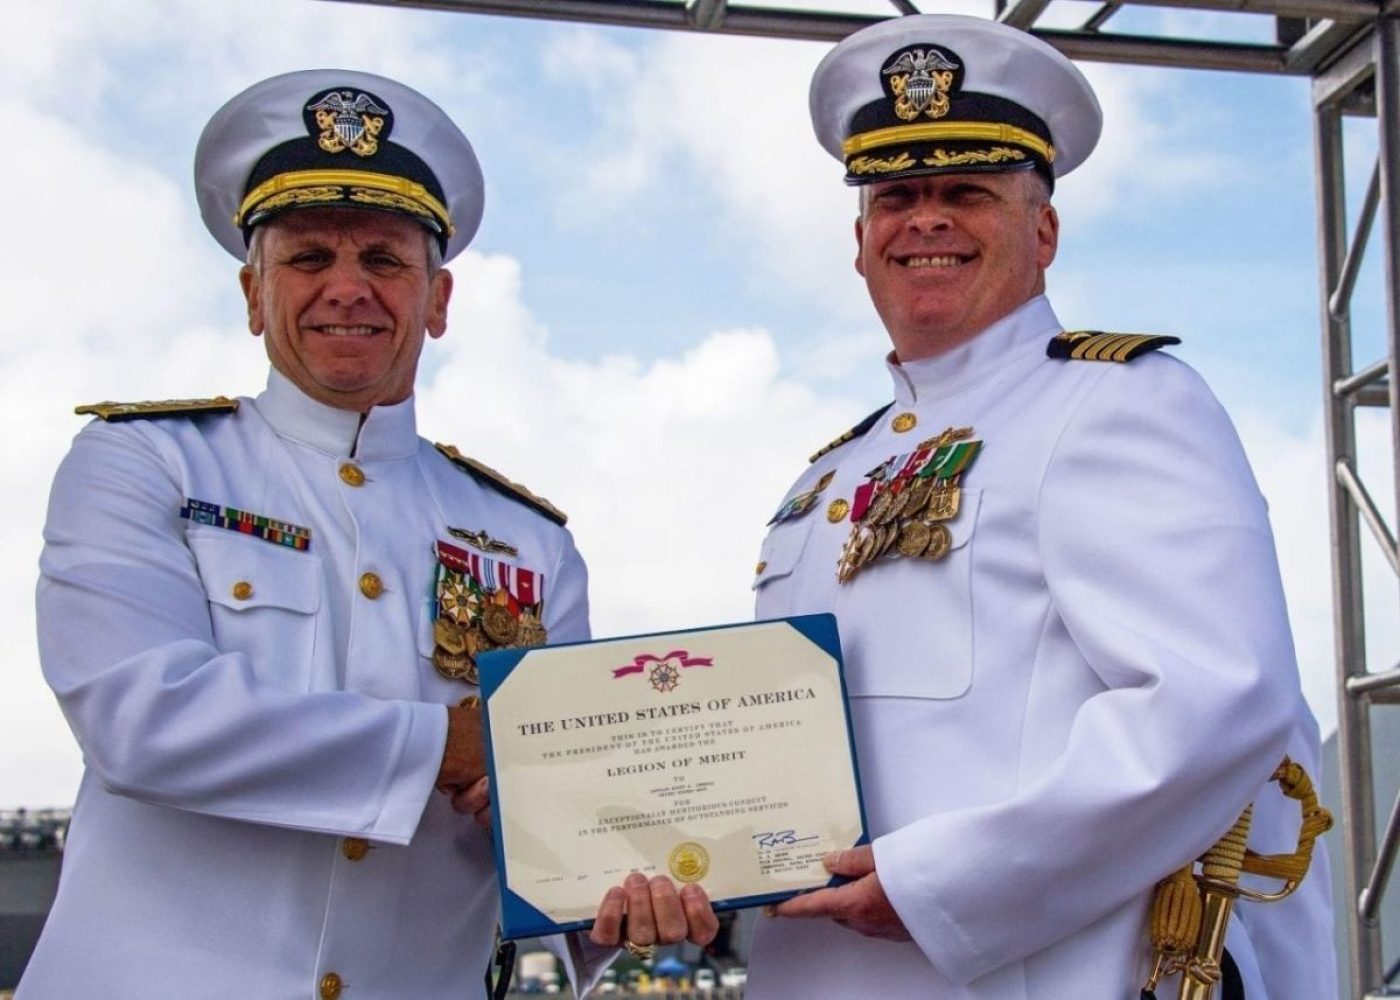 Vice Adm. Rich Brown, commander, Naval Surface Force, U.S. Pacific Fleet, presents the Legion of Merit to Capt. Scott Carroll in recognition of his leadership of Commander Zumwalt Squadron ONE during its transition into the newly established Surface Development Squadron ONE at Naval Base San Diego May 22, 2019. SURFDEVRON ONE is expected to follow the innovative legacy of Zumwalt Squadron ONE and Adm. Elmo Zumwalt to integrate unmanned surface vessels (USV) and support fleet experimentation to accelerate delivery of new warfighting concepts and capabilities to the fleet.